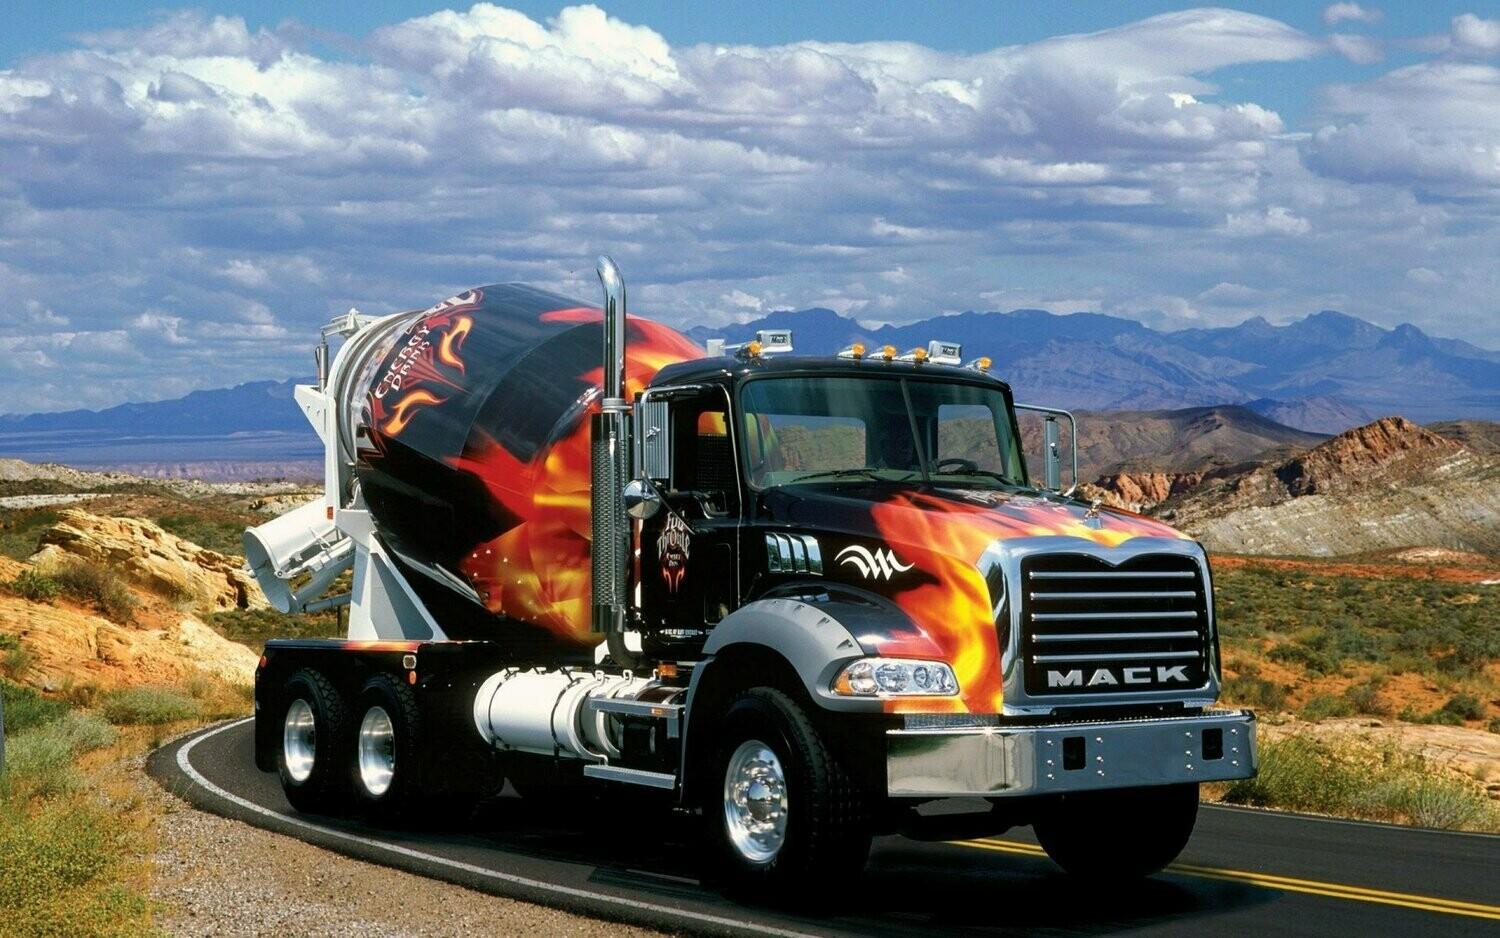 Big Trucks 20 - Full Drill Diamond Painting - Specially ordered for you. Delivery is approximately 4 - 6 weeks.